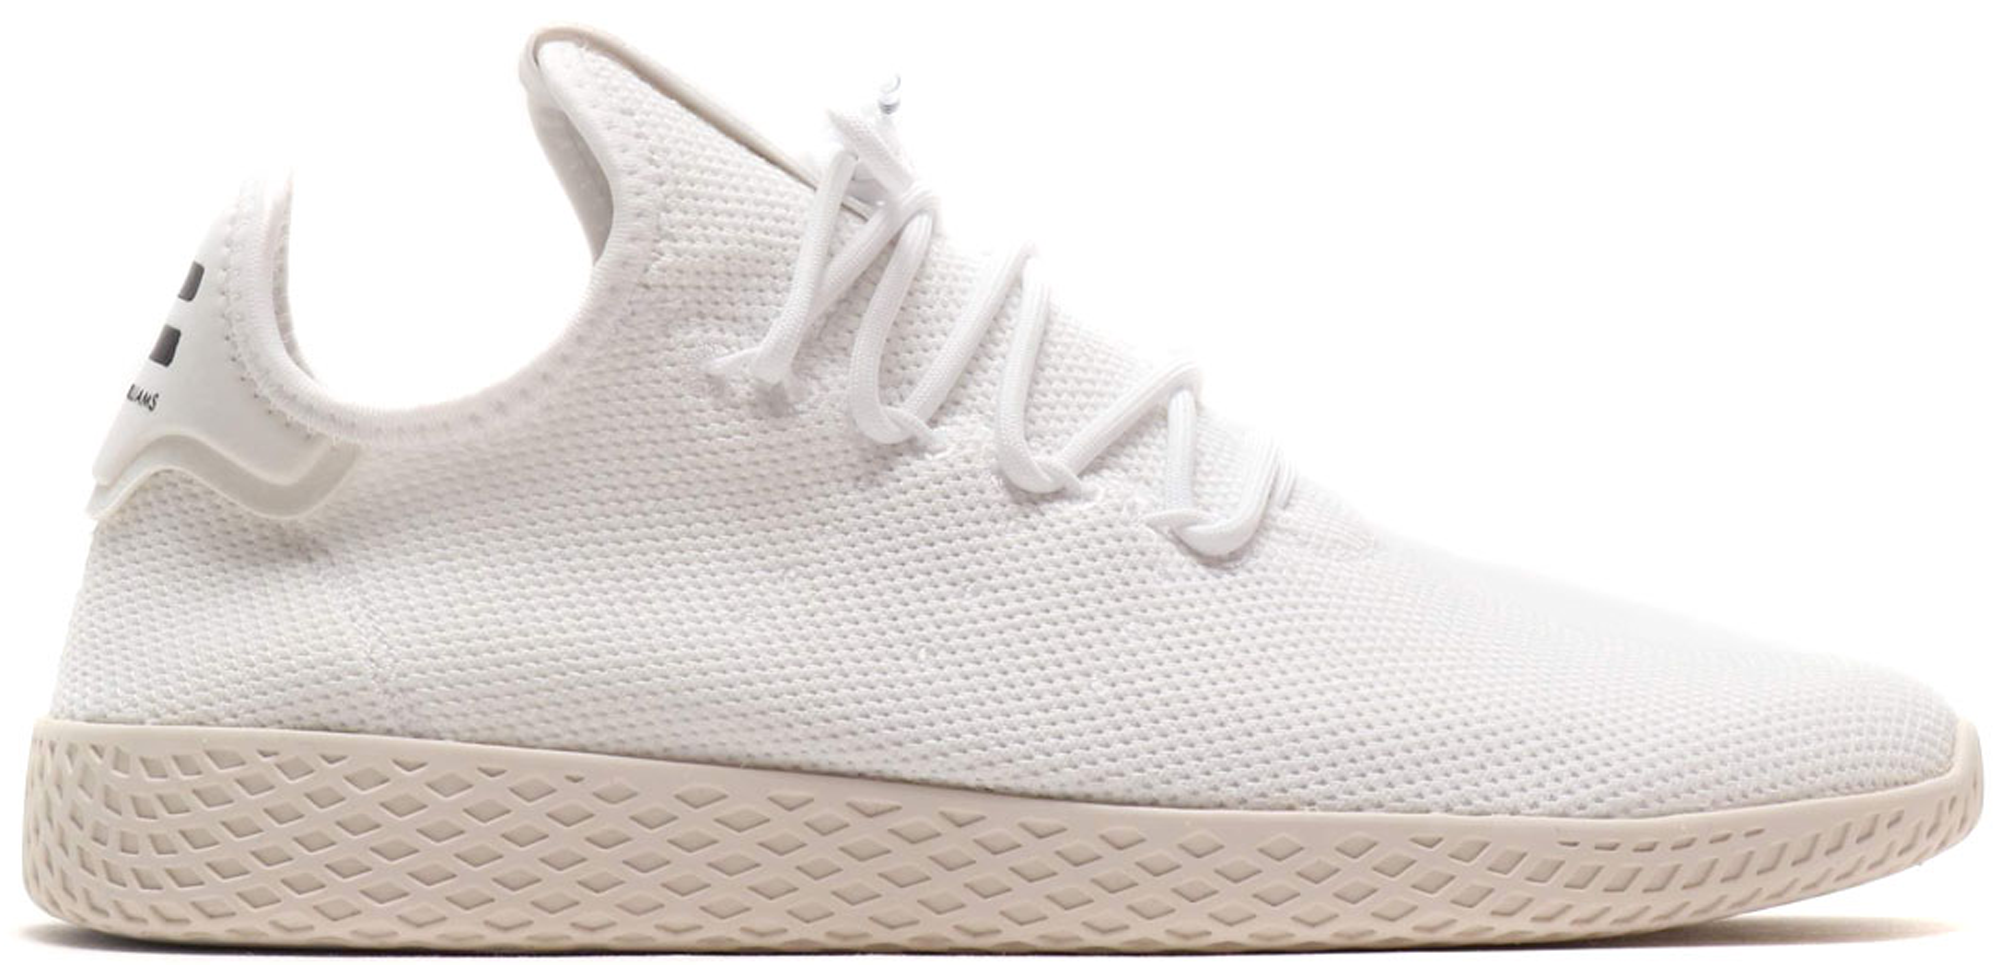 adidas Tennis Hu Pharrell Running White Chalk White